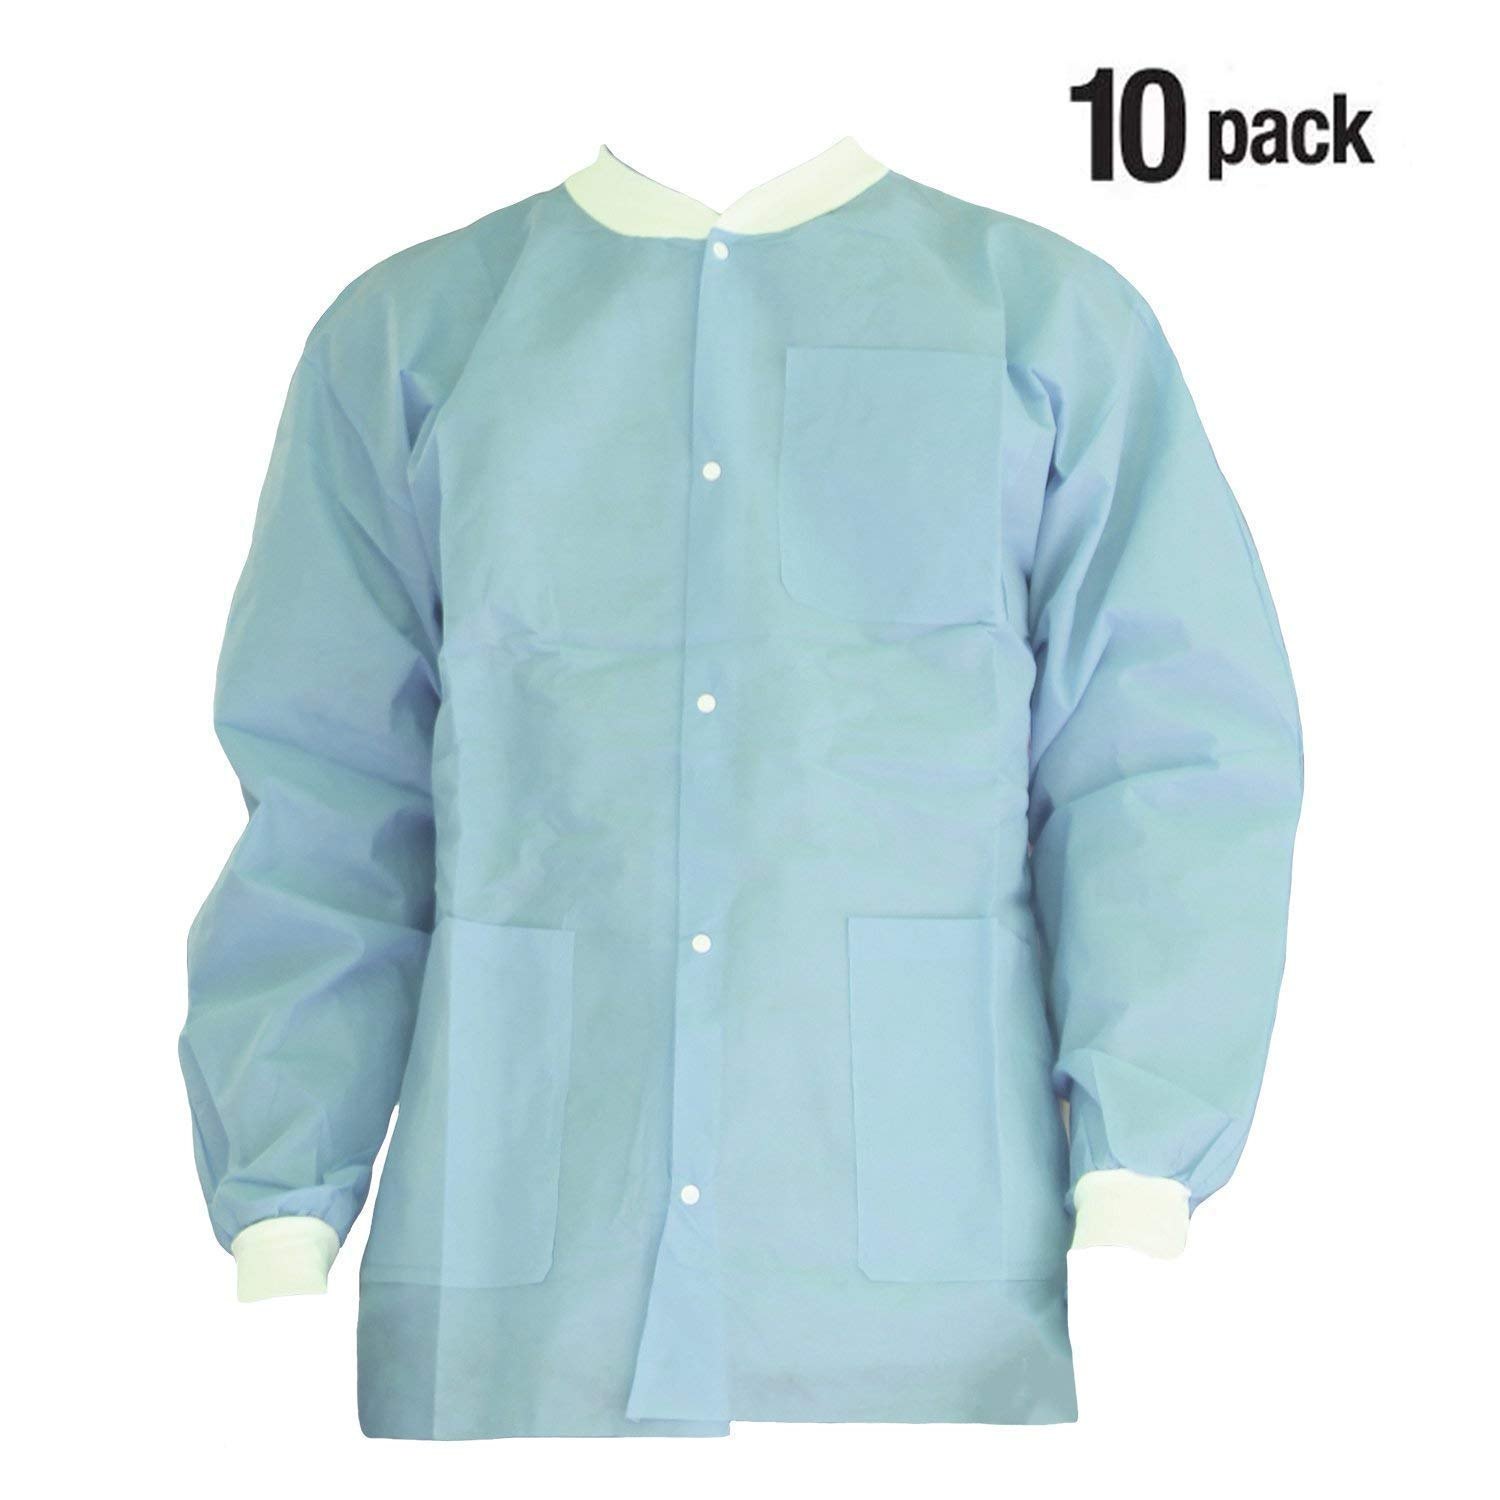 Premium Quality SMS Jacket for Medical Professionals, Made of SMS Soft Fabric 3 Layer, Lab Jacket Prevents Static, Latex Free, (10-pack) (Large, Ceil Blue)